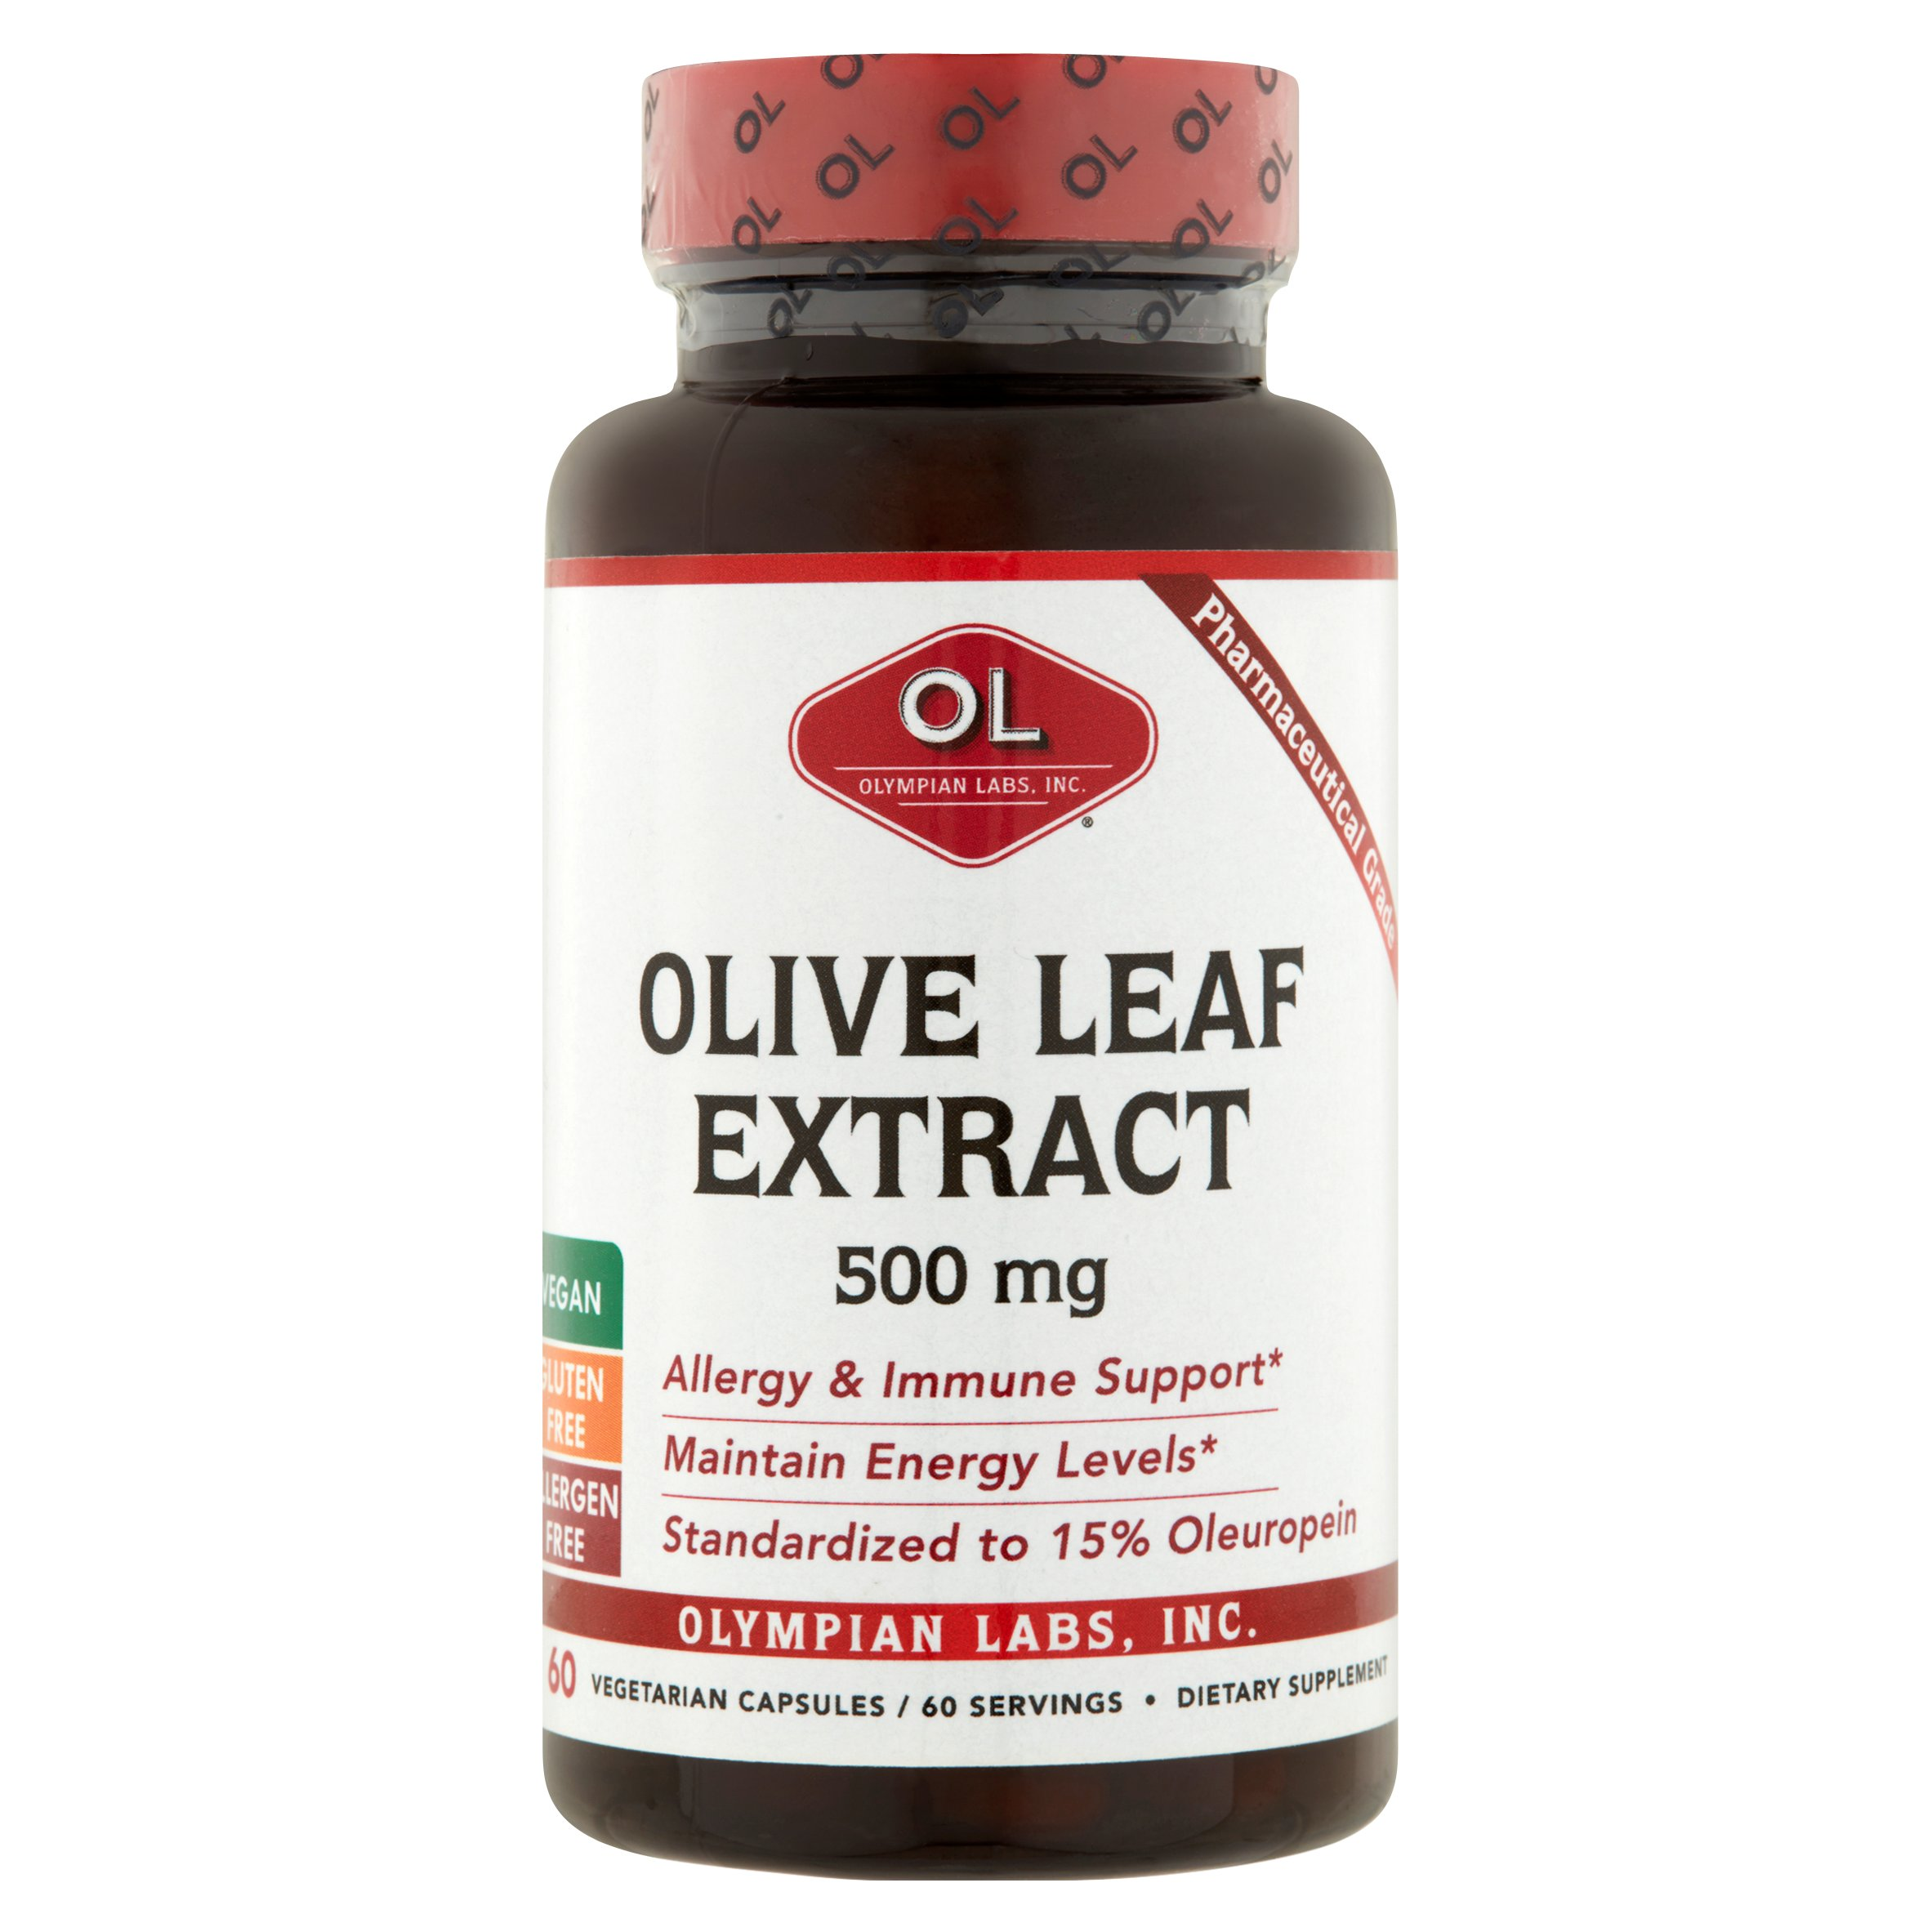 Olympian Labs Olive Leaf Extract Vegetarian Capsules, 500 mg, 60 count